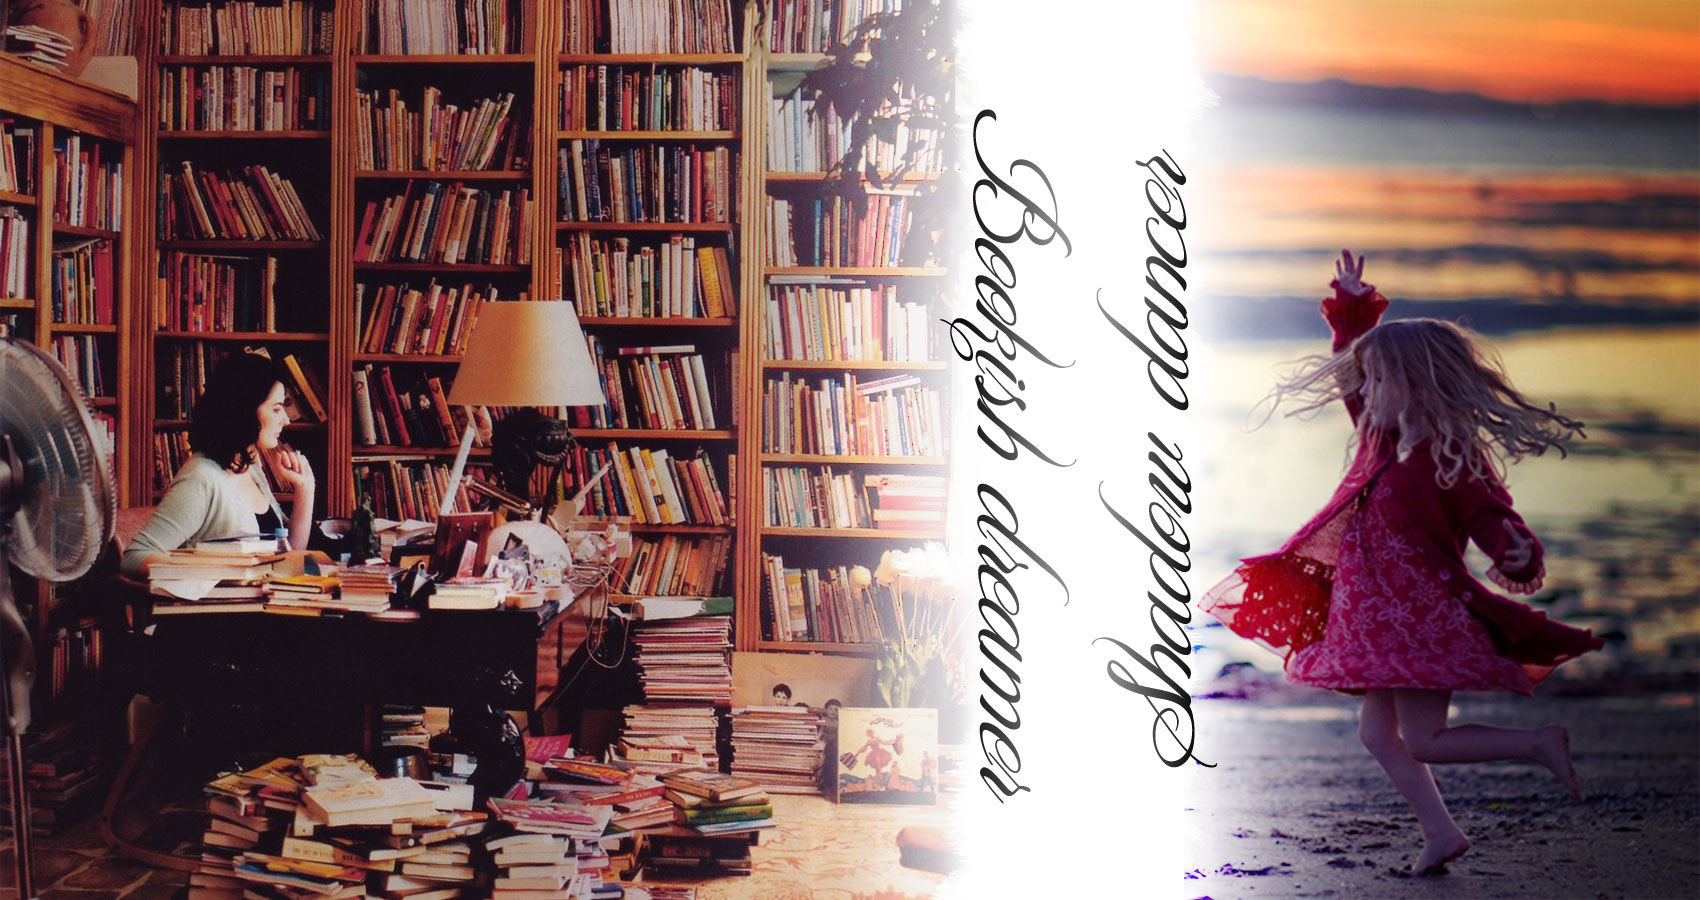 Reflections from a Library by Kathleen Truax Kamrada at Spillwords.com